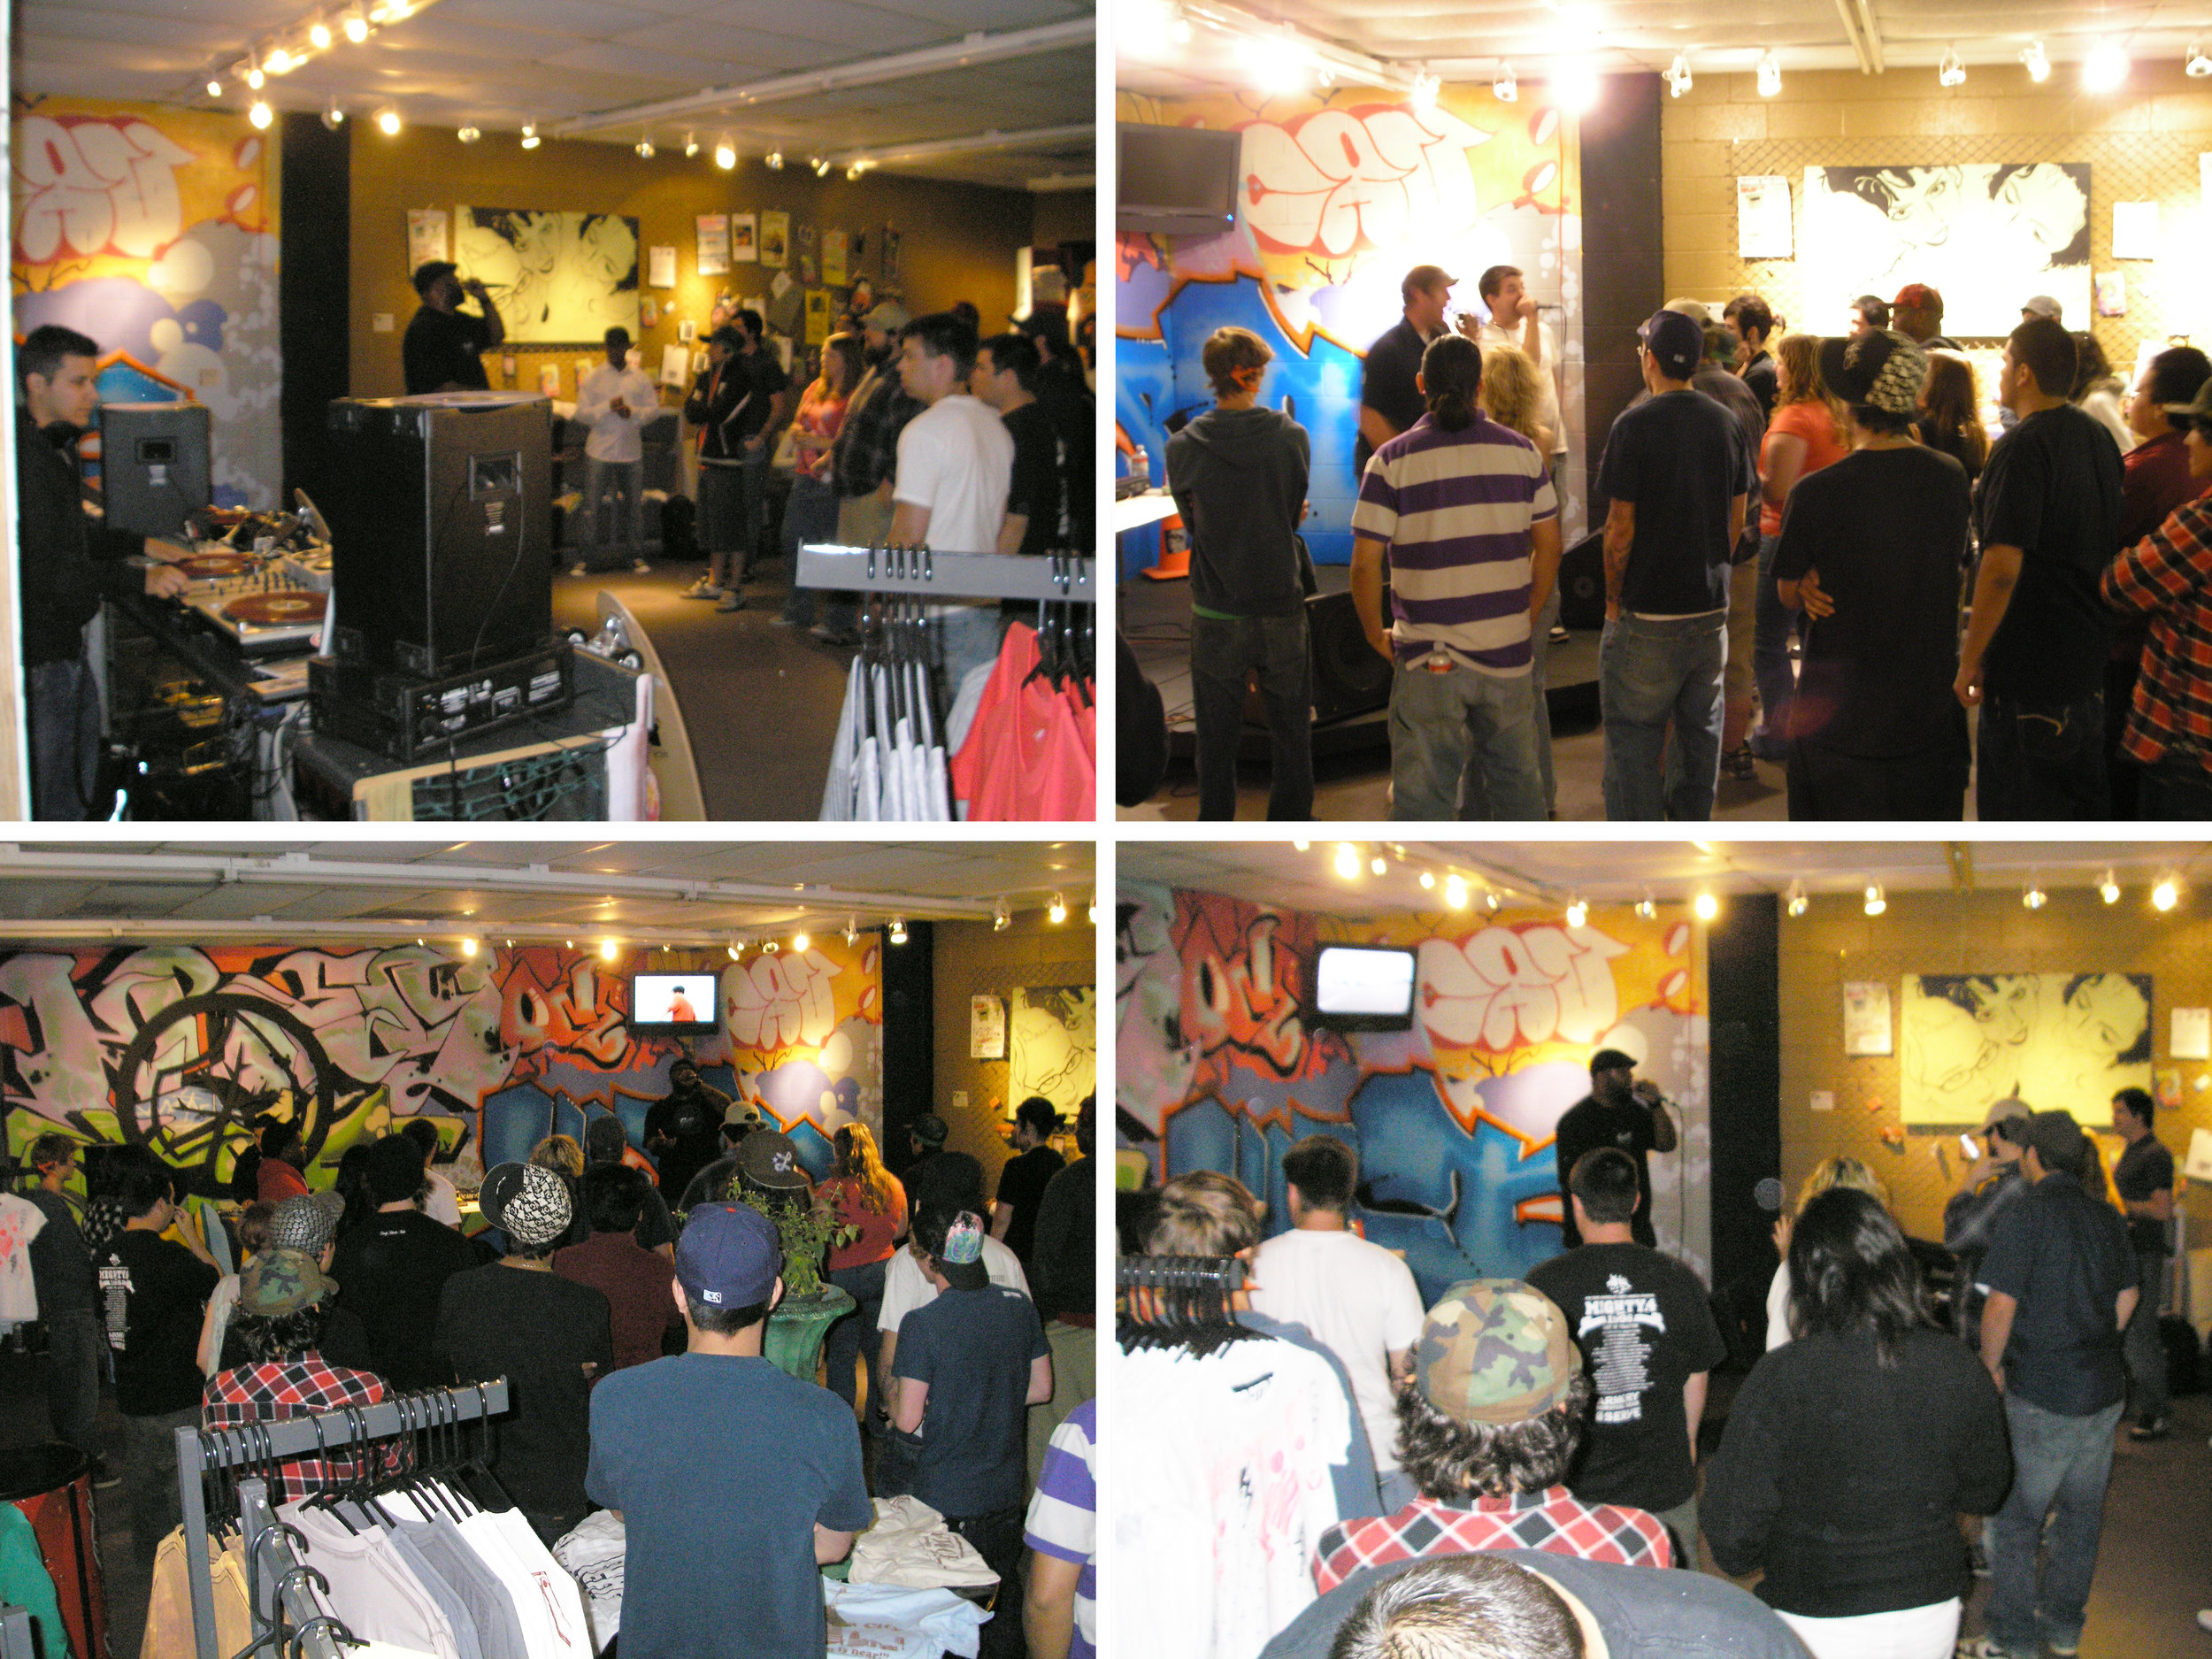 We continued to host music events in the store. Our shows ranged from hip-hop to folk. There weren't many venues in OKC at the time and our store was just big enough to host small events. These photos are of a show hosted by Jabee Williams. The performers were 8-Bit Cynics, Jivin' Scientists, and another performer from Tucson (someone remind me...?)